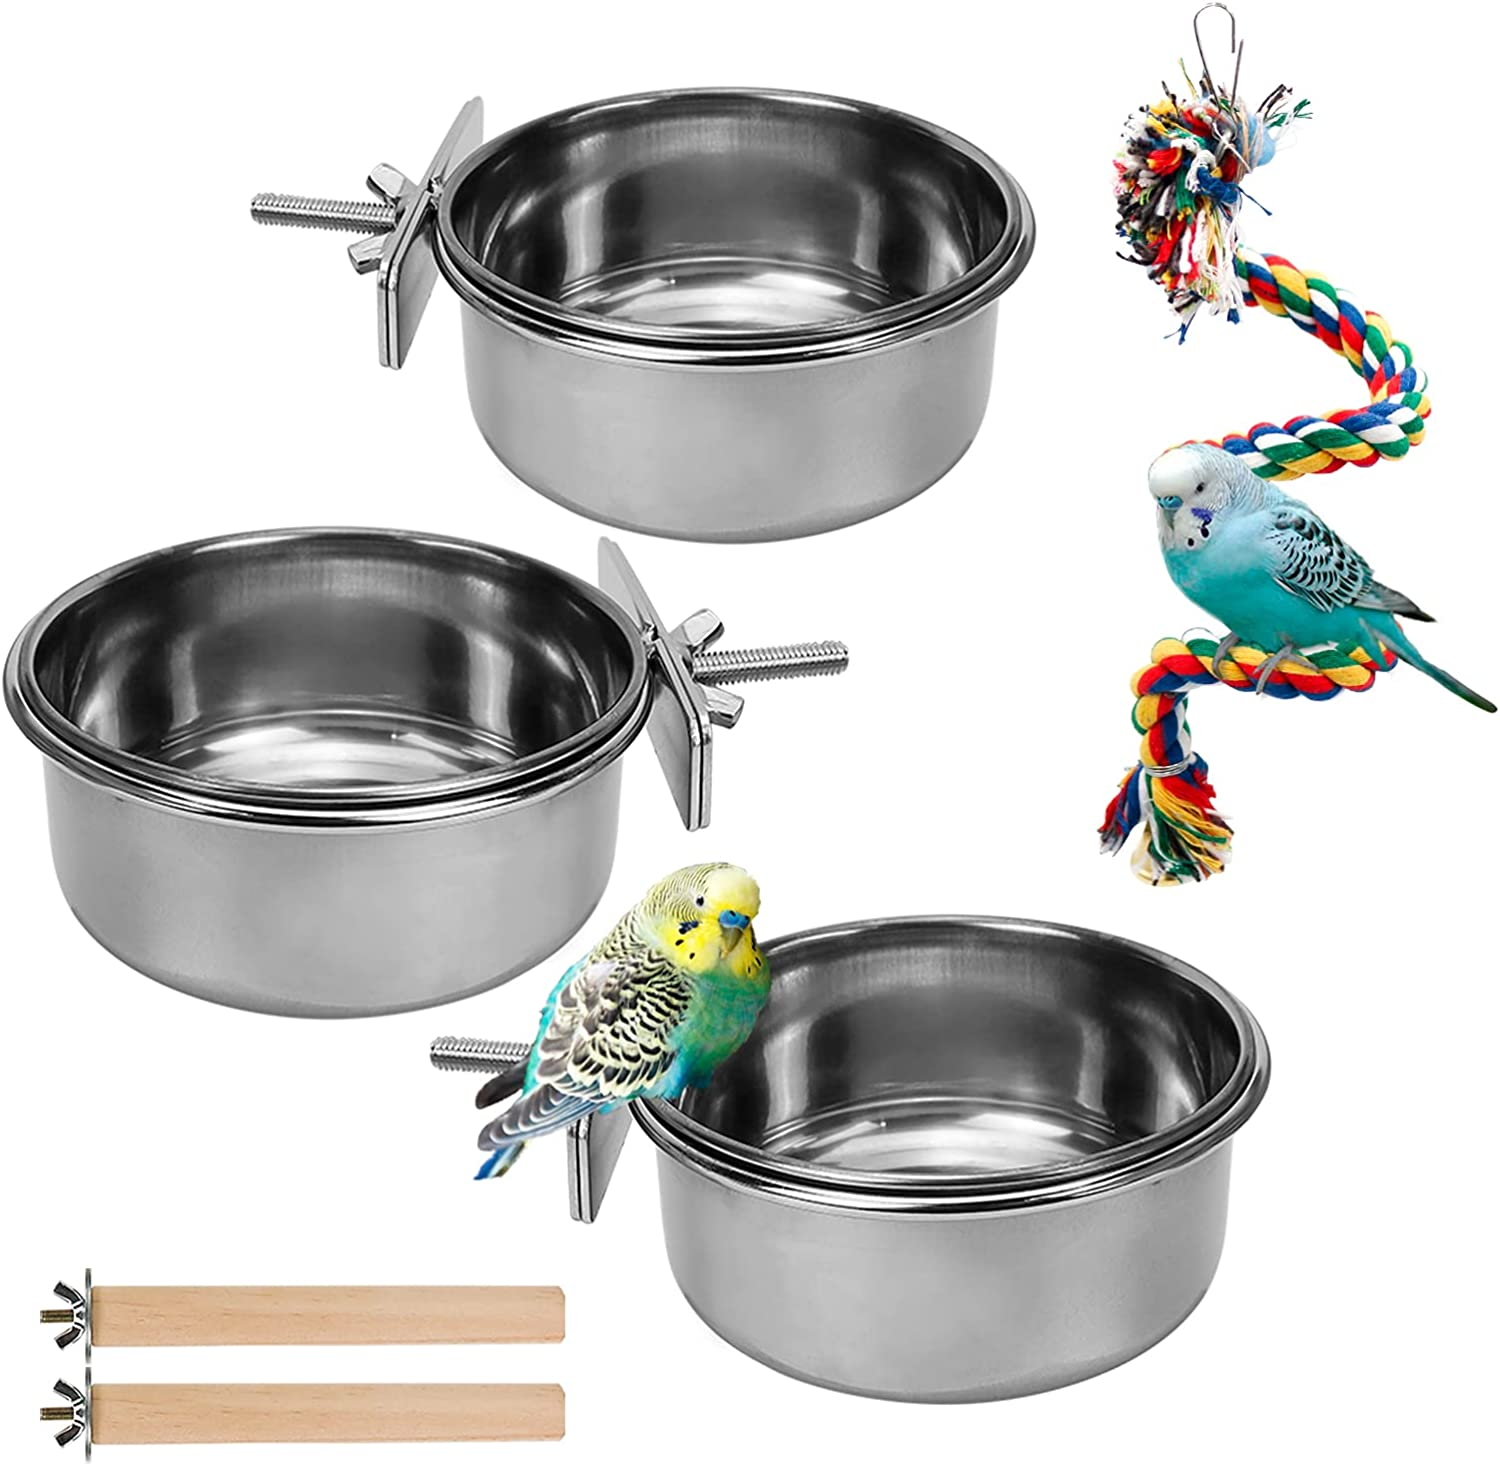 3 Pack Birds Food Dish Parrot Stainless Steel Feeding Cups Bird Feeders Water Cage Bowls with Clamp Holder and 2 Pcs Bird Stand Toy for Parakeet Conure Cockatiels Lovebird Budgie Chinchilla (Set 3)